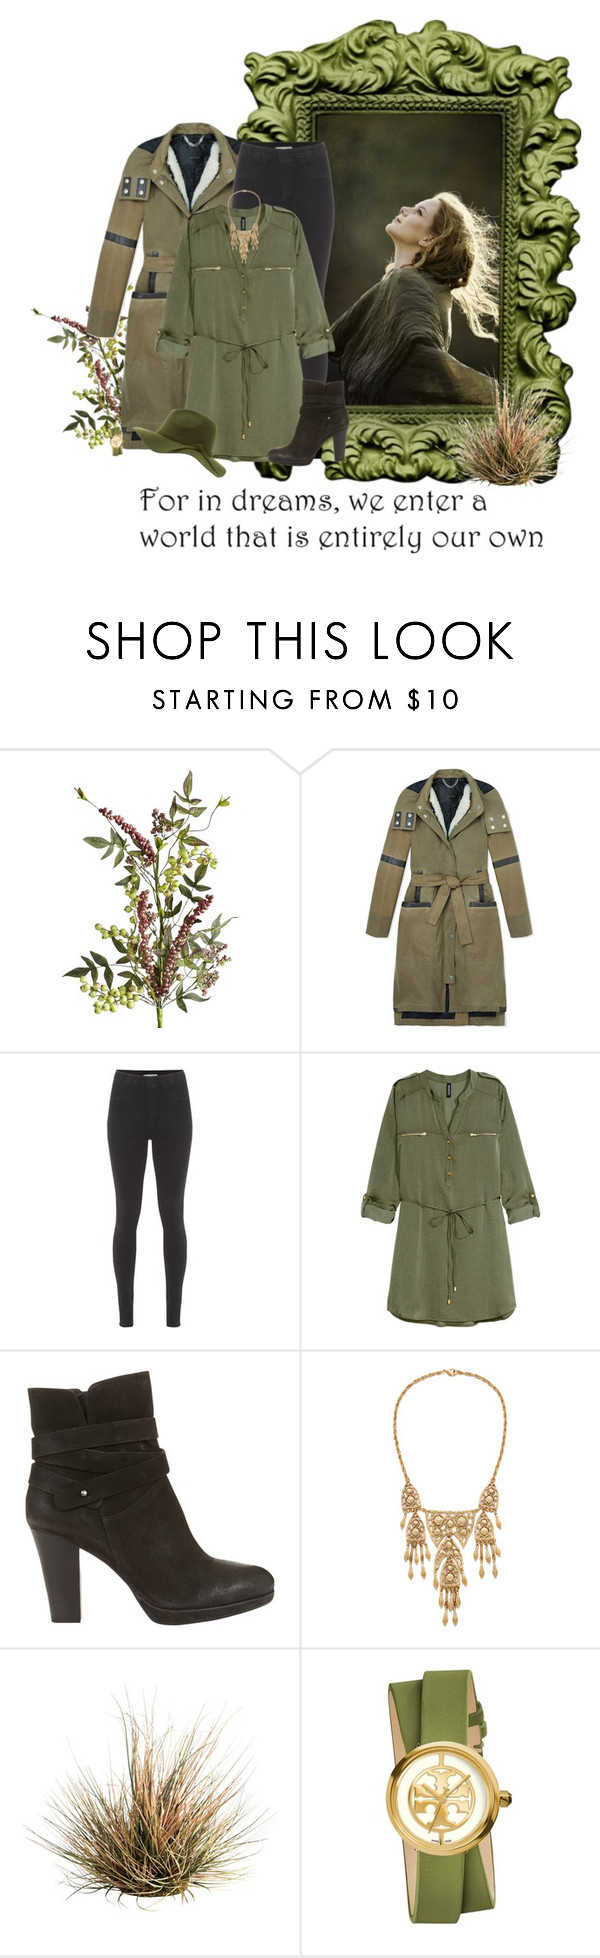 """Wildly Going"" by seafreak83 ❤ liked on Polyvore featuring Pier 1 Imports, White Stuff, H&M, Mint Velvet, Ben-Amun, Tory Burch, women's clothing, women's fashion, women and female"